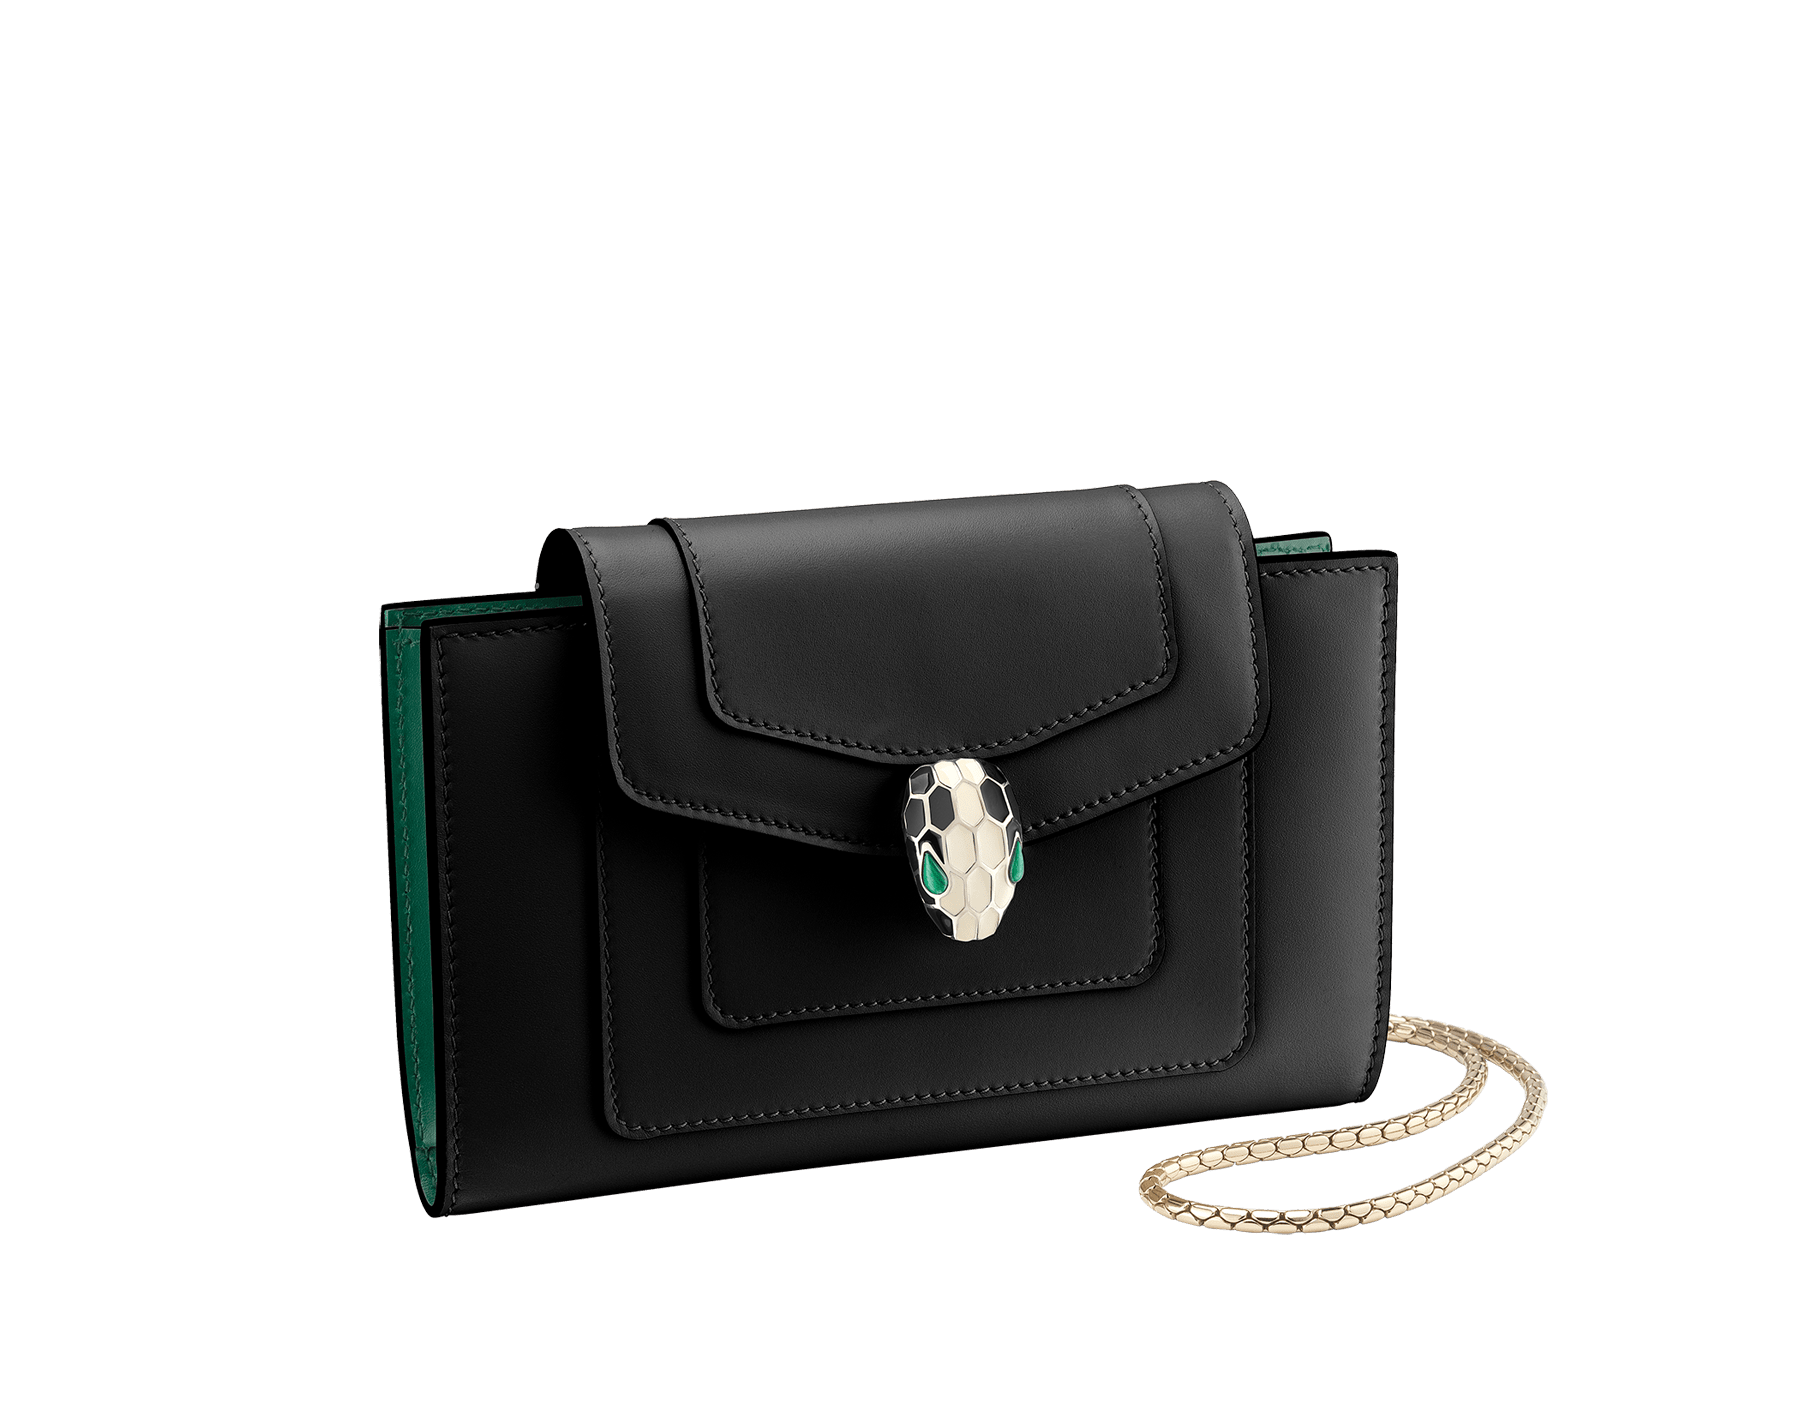 Techno-hybrid Serpenti Forever in flamingo quartz calf leather, with roman garnet calf leather lining. Brass light gold plated Serpenti head stud closure in black and white enamel, with green enamel eyes. SEA-TECHNO-HYBRIDb image 1